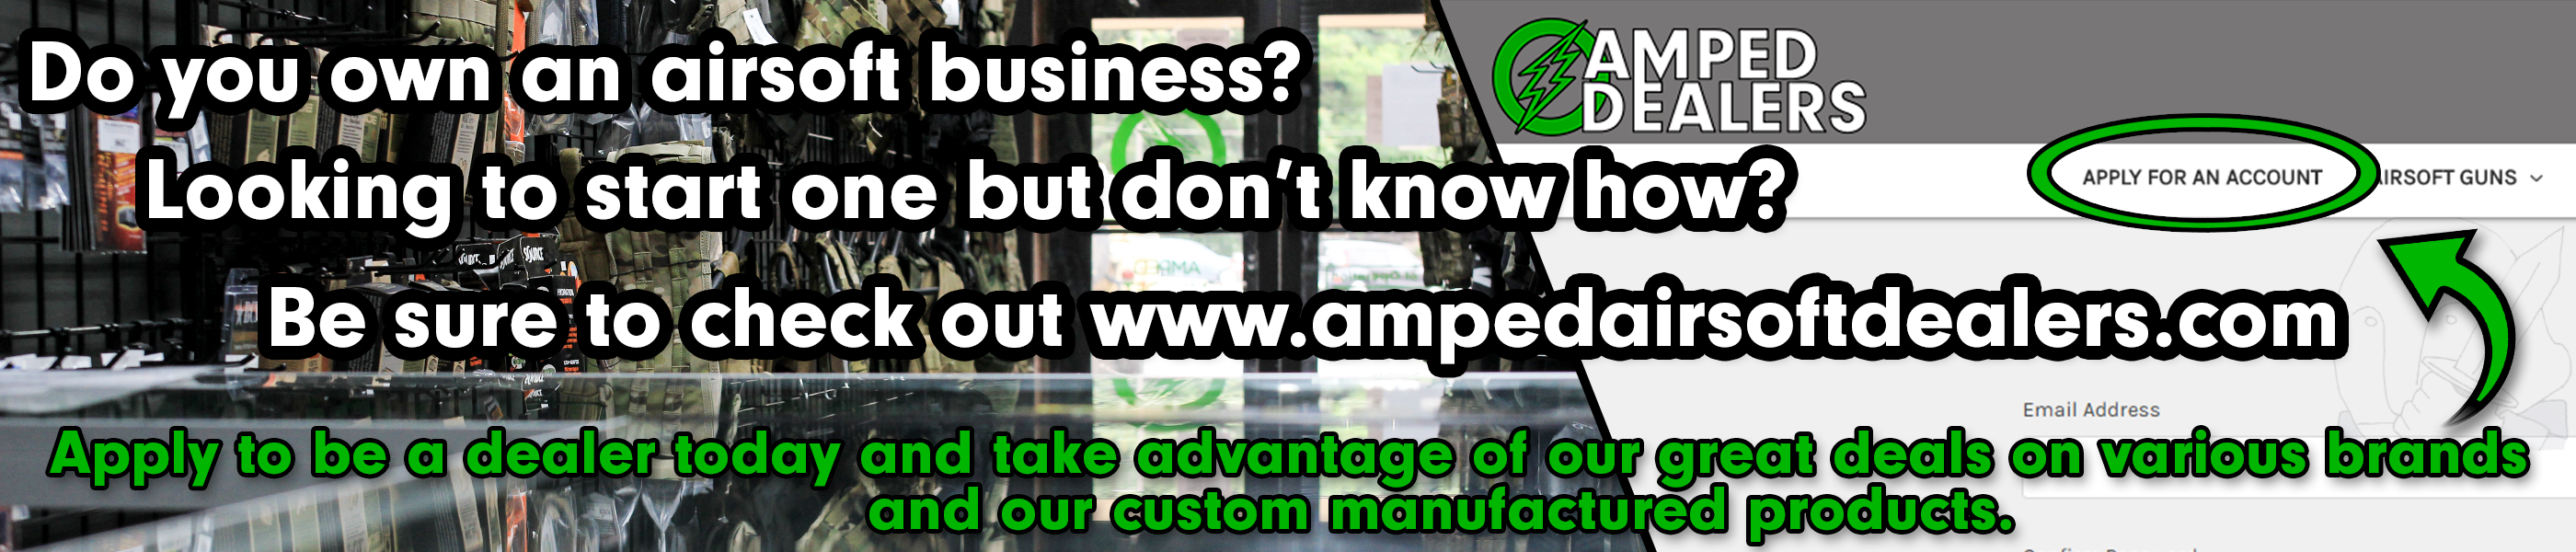 Become an Amped Airsoft Dealer Today!